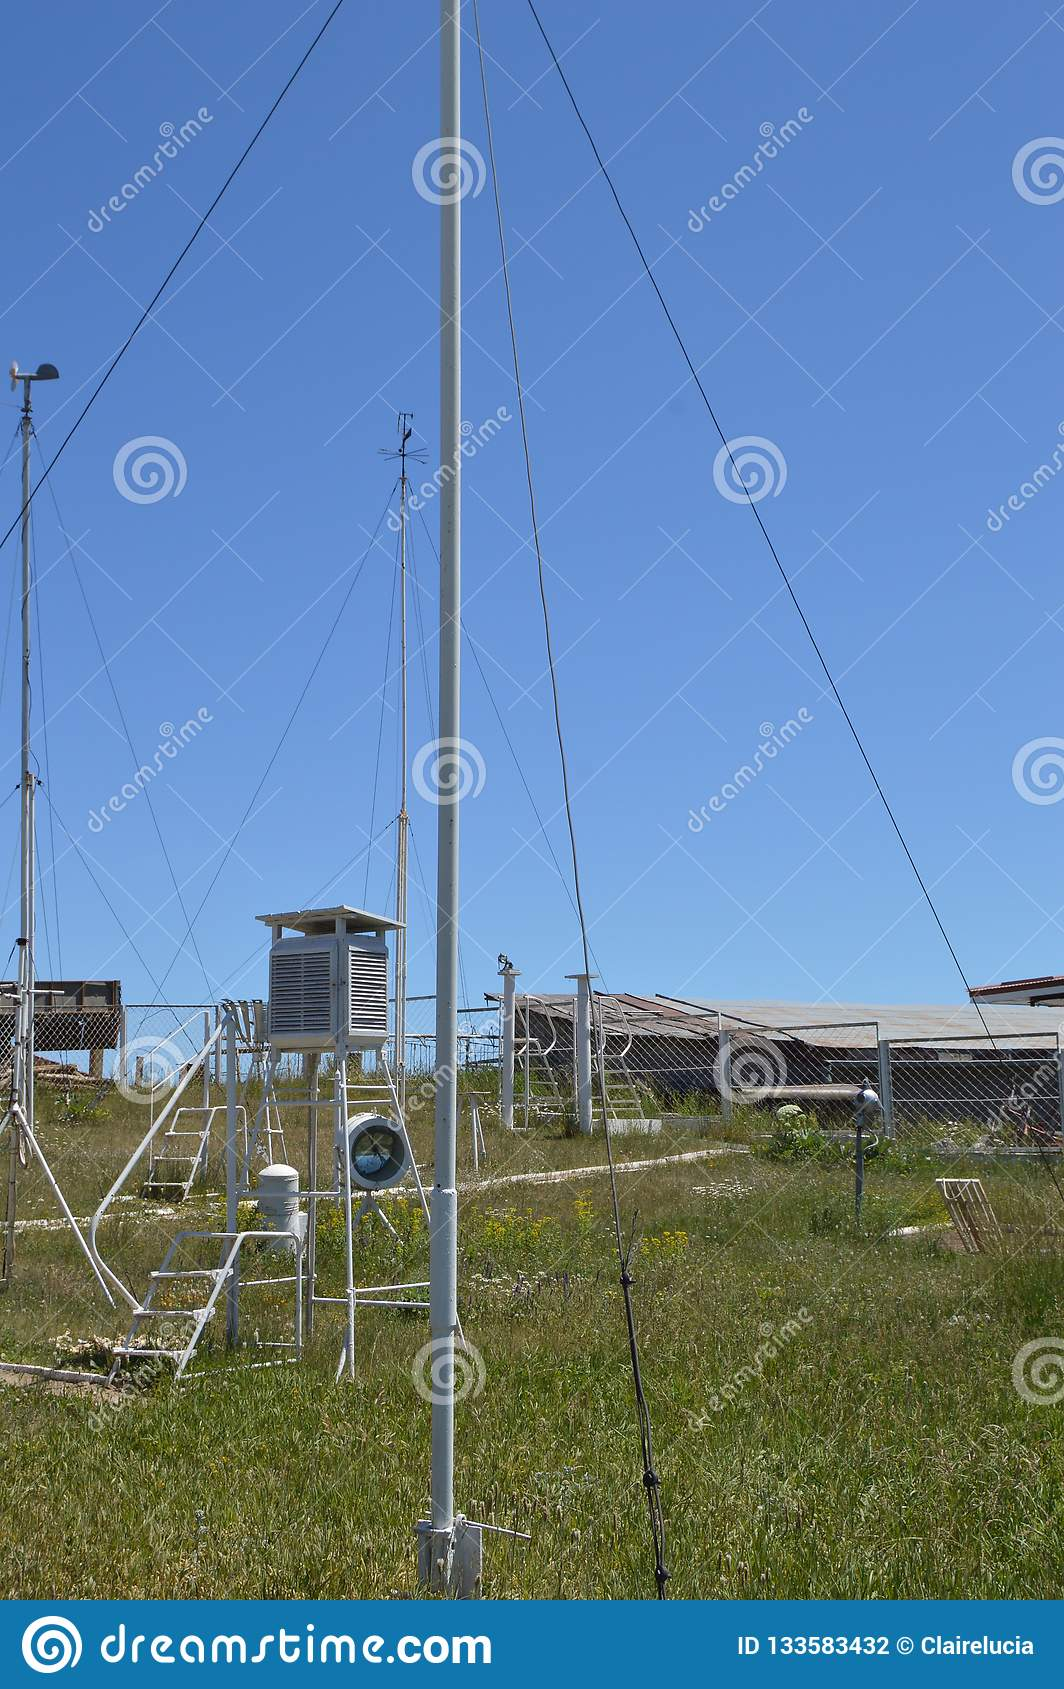 Weather station at the top of the mountain against the blue sky and grass on a Sunny summer day, vertical shot